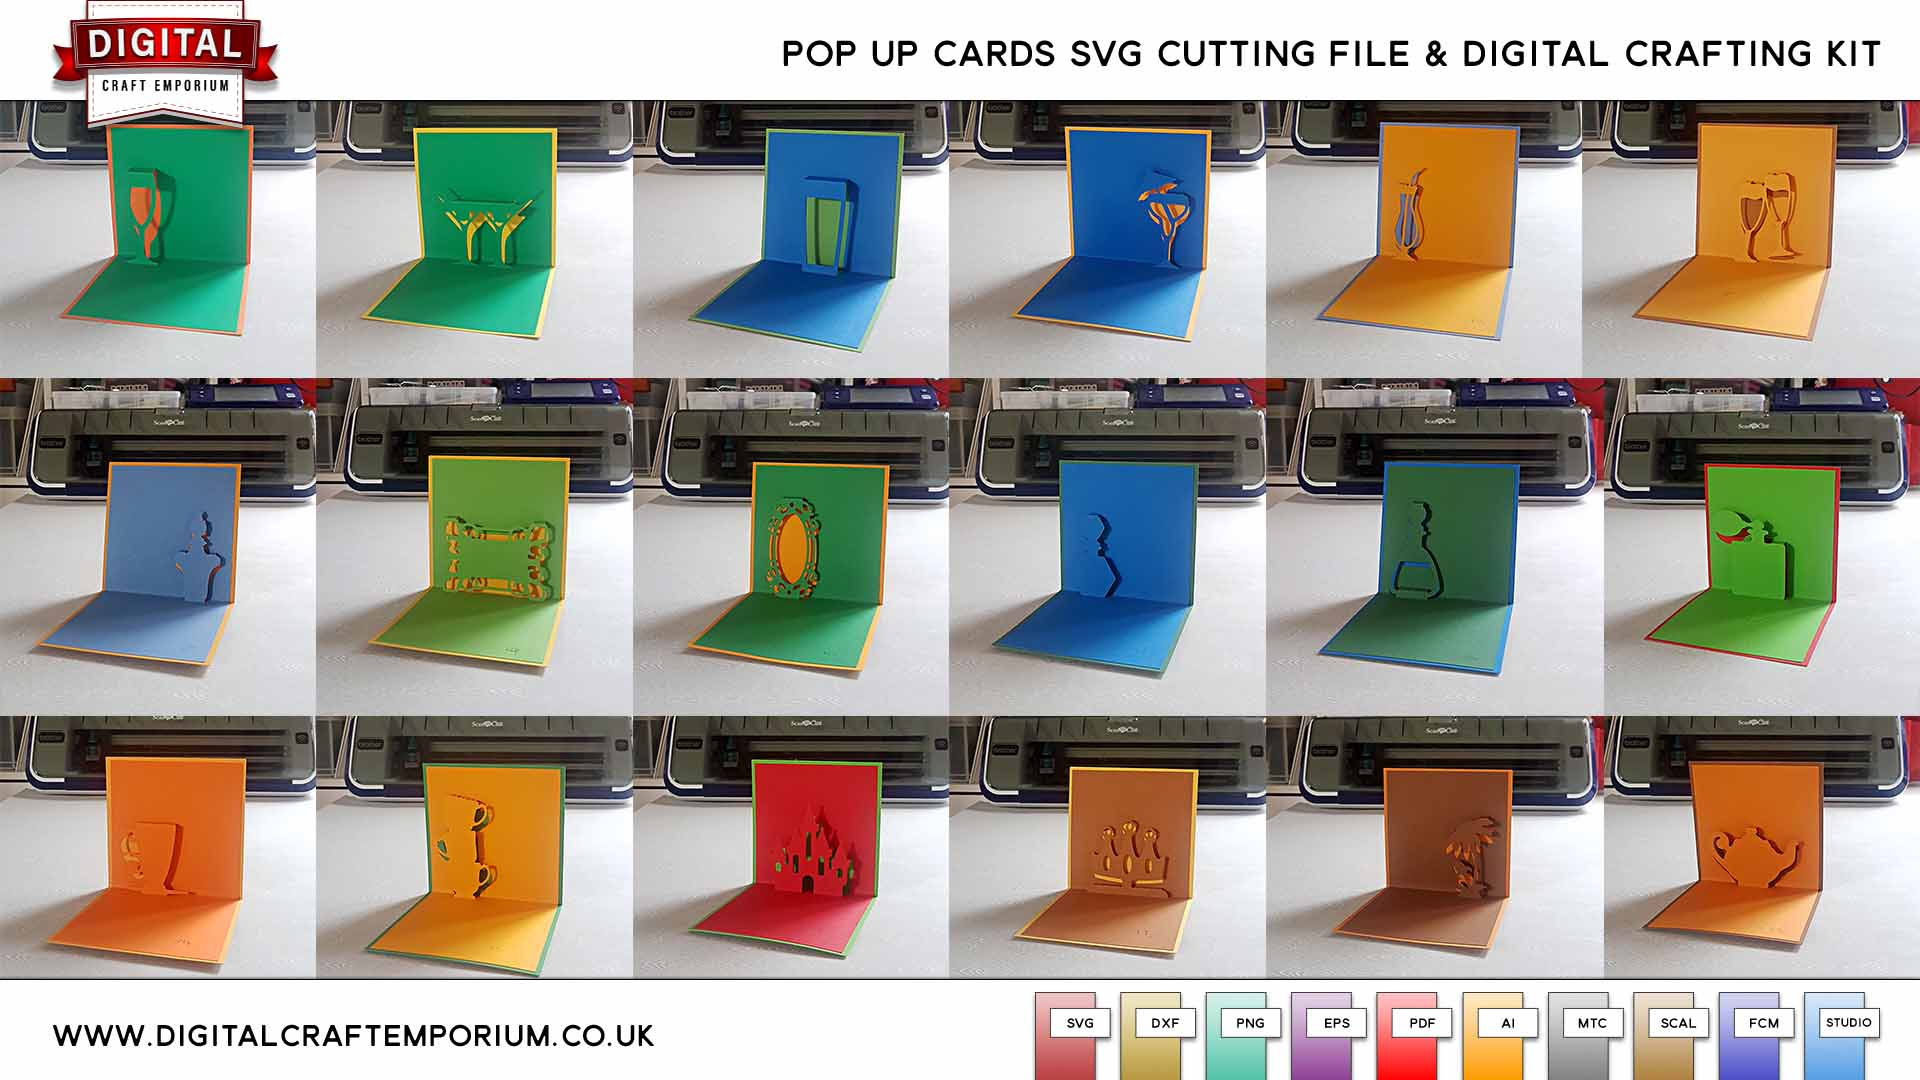 File Check Out Card new free pop up insert svg cutting file available now